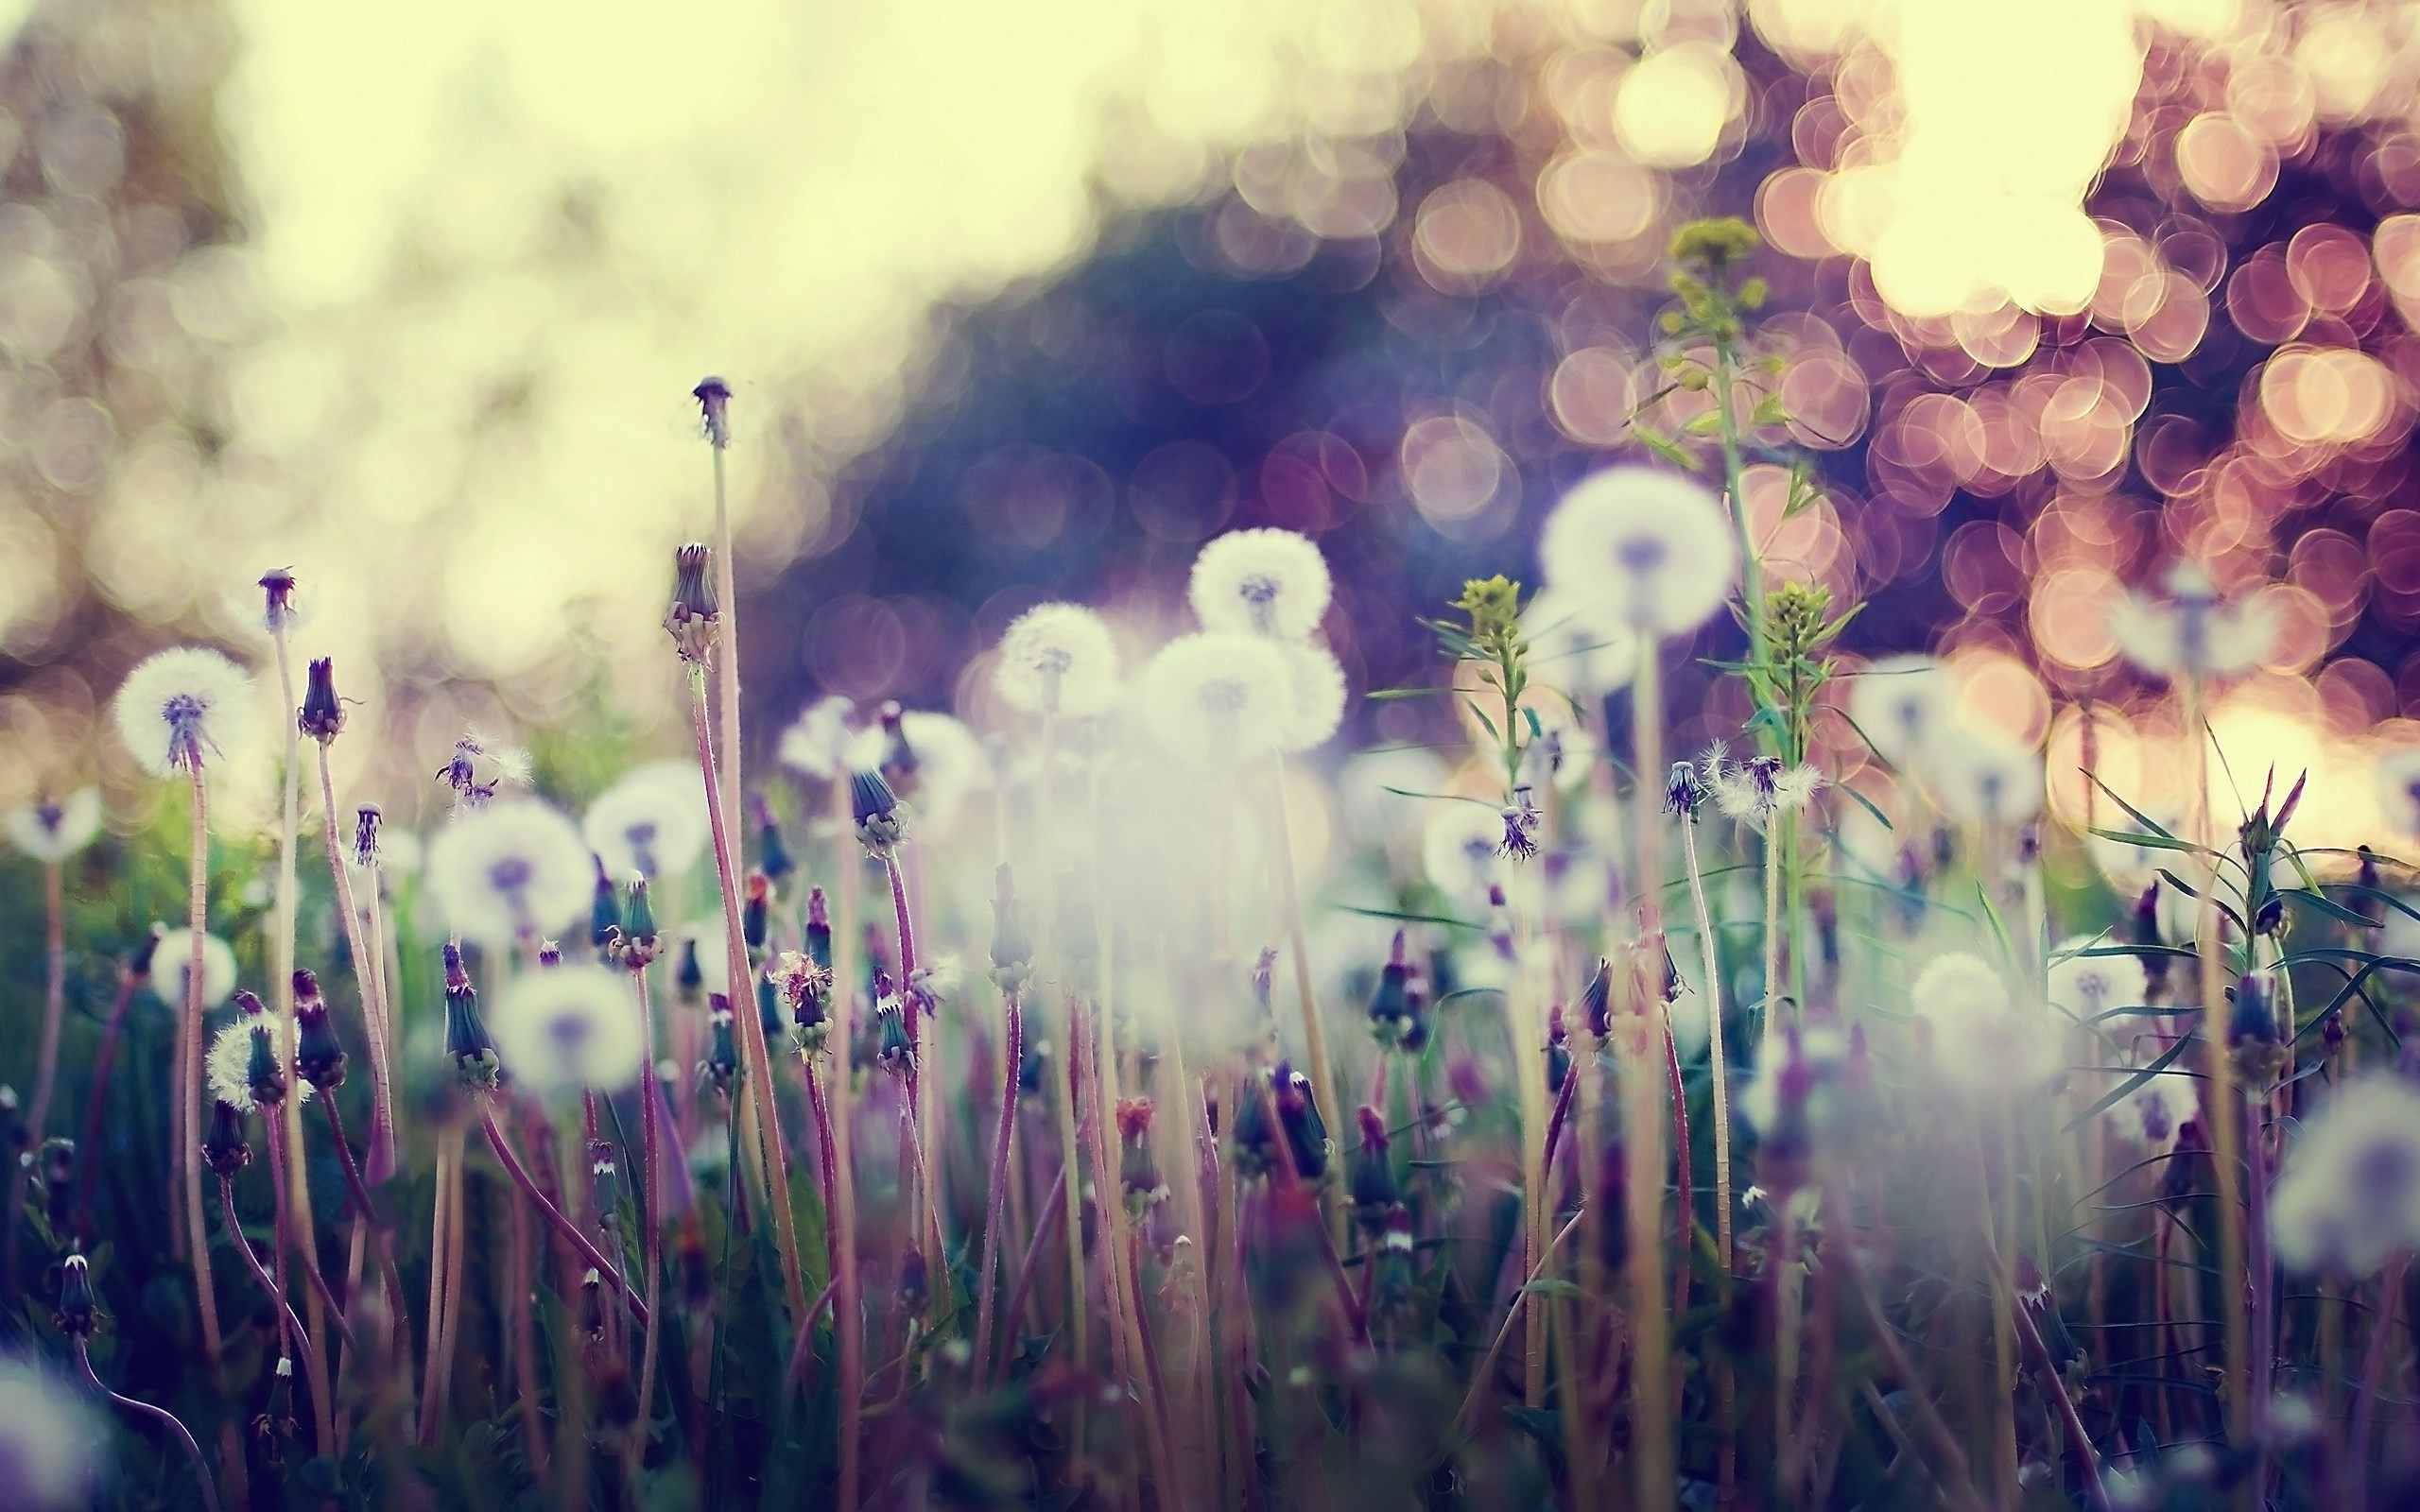 MACRO wallpaper | macro-dandelions-grass-flowers-nature-hd-wallpaper